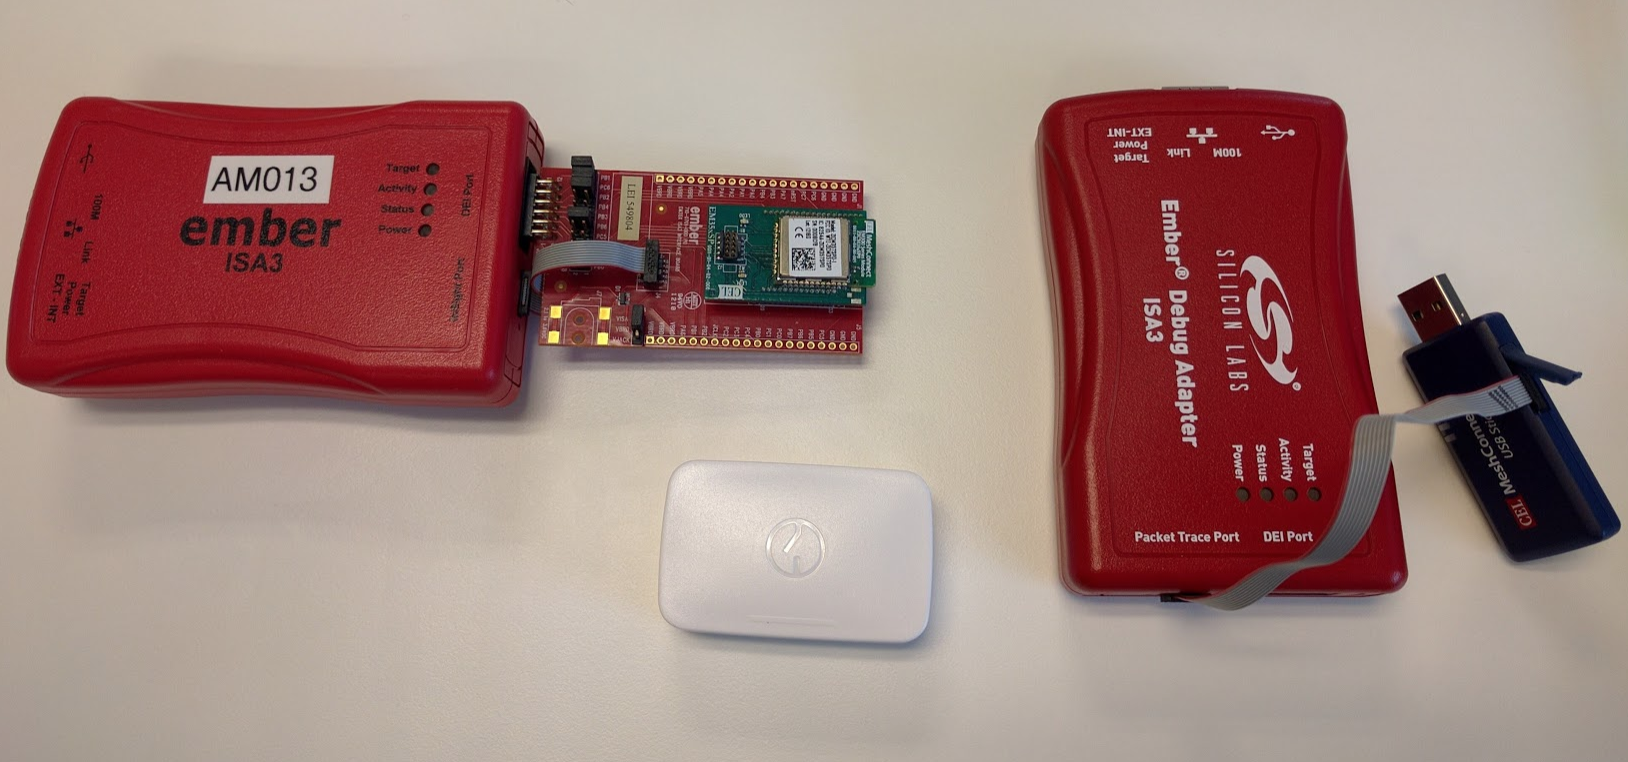 Zigbee Sniffer Recommendations - Connected Things - SmartThings